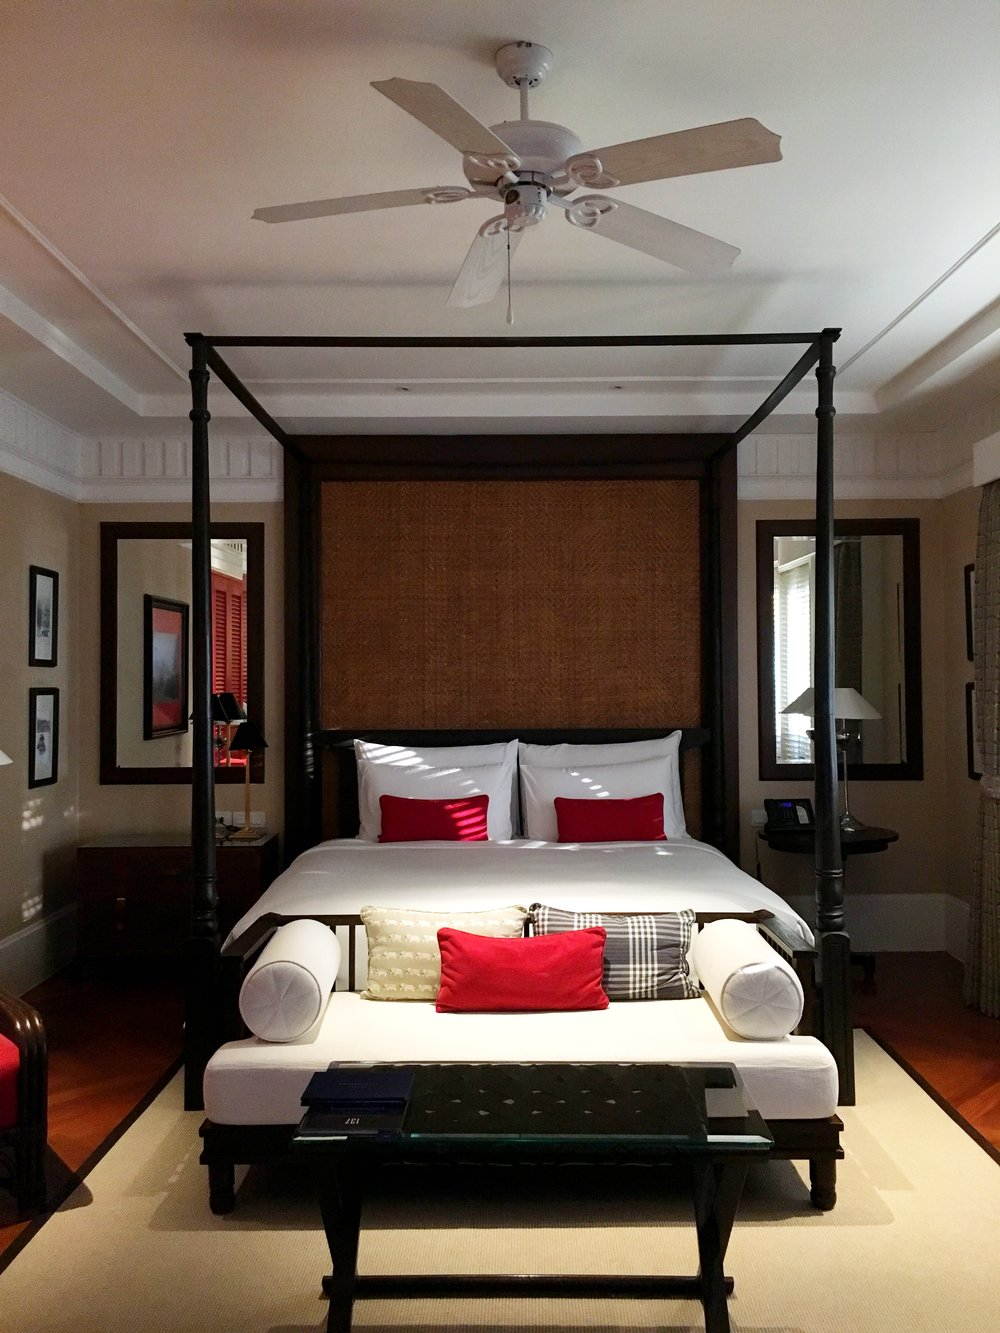 The Leonowens Suite's bedroom